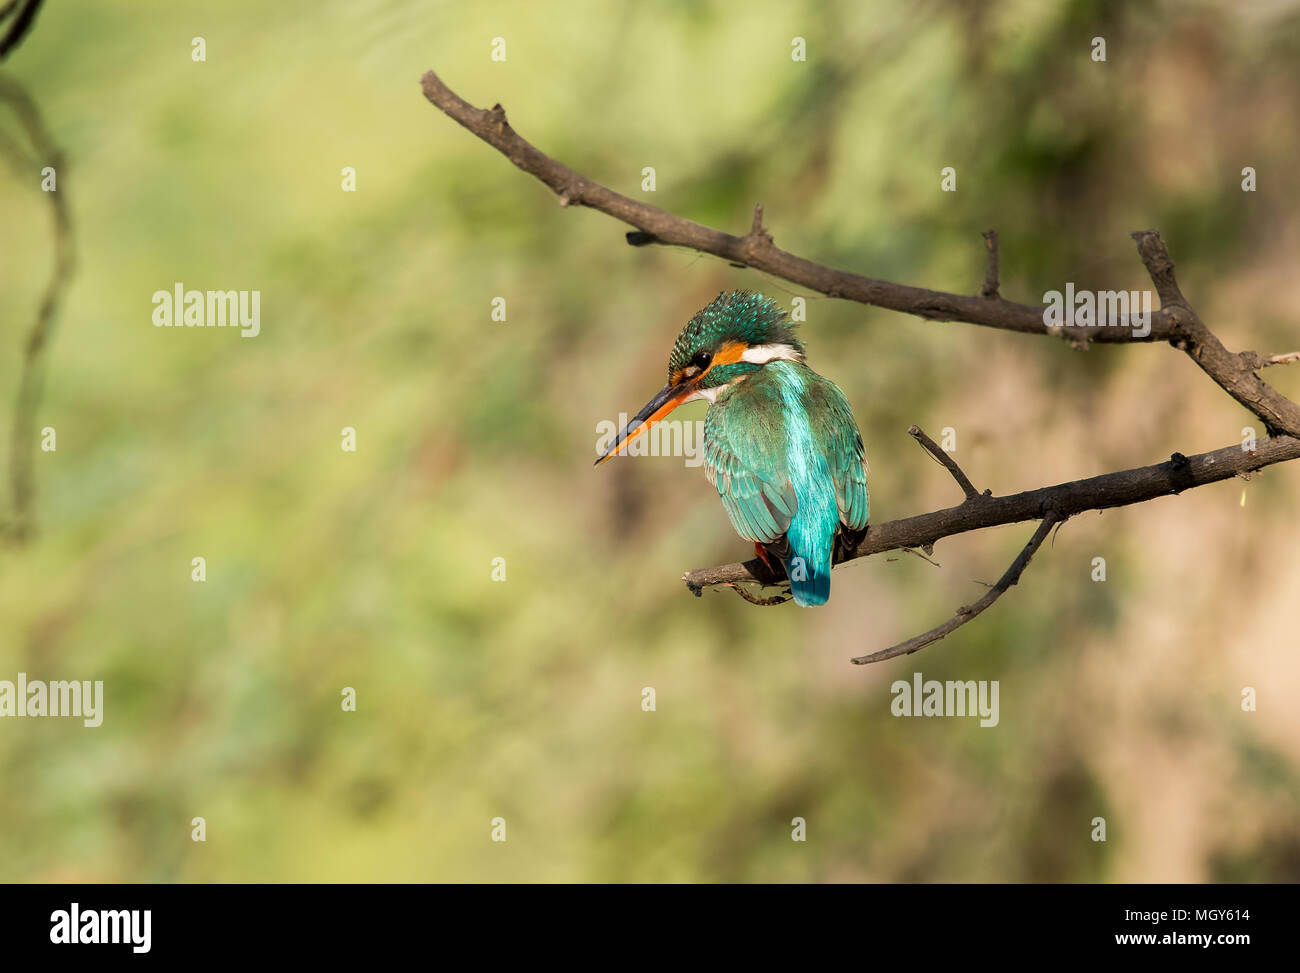 A white breasted king fisher sitting on a perch and scanning its surroundings for any movement - Stock Image